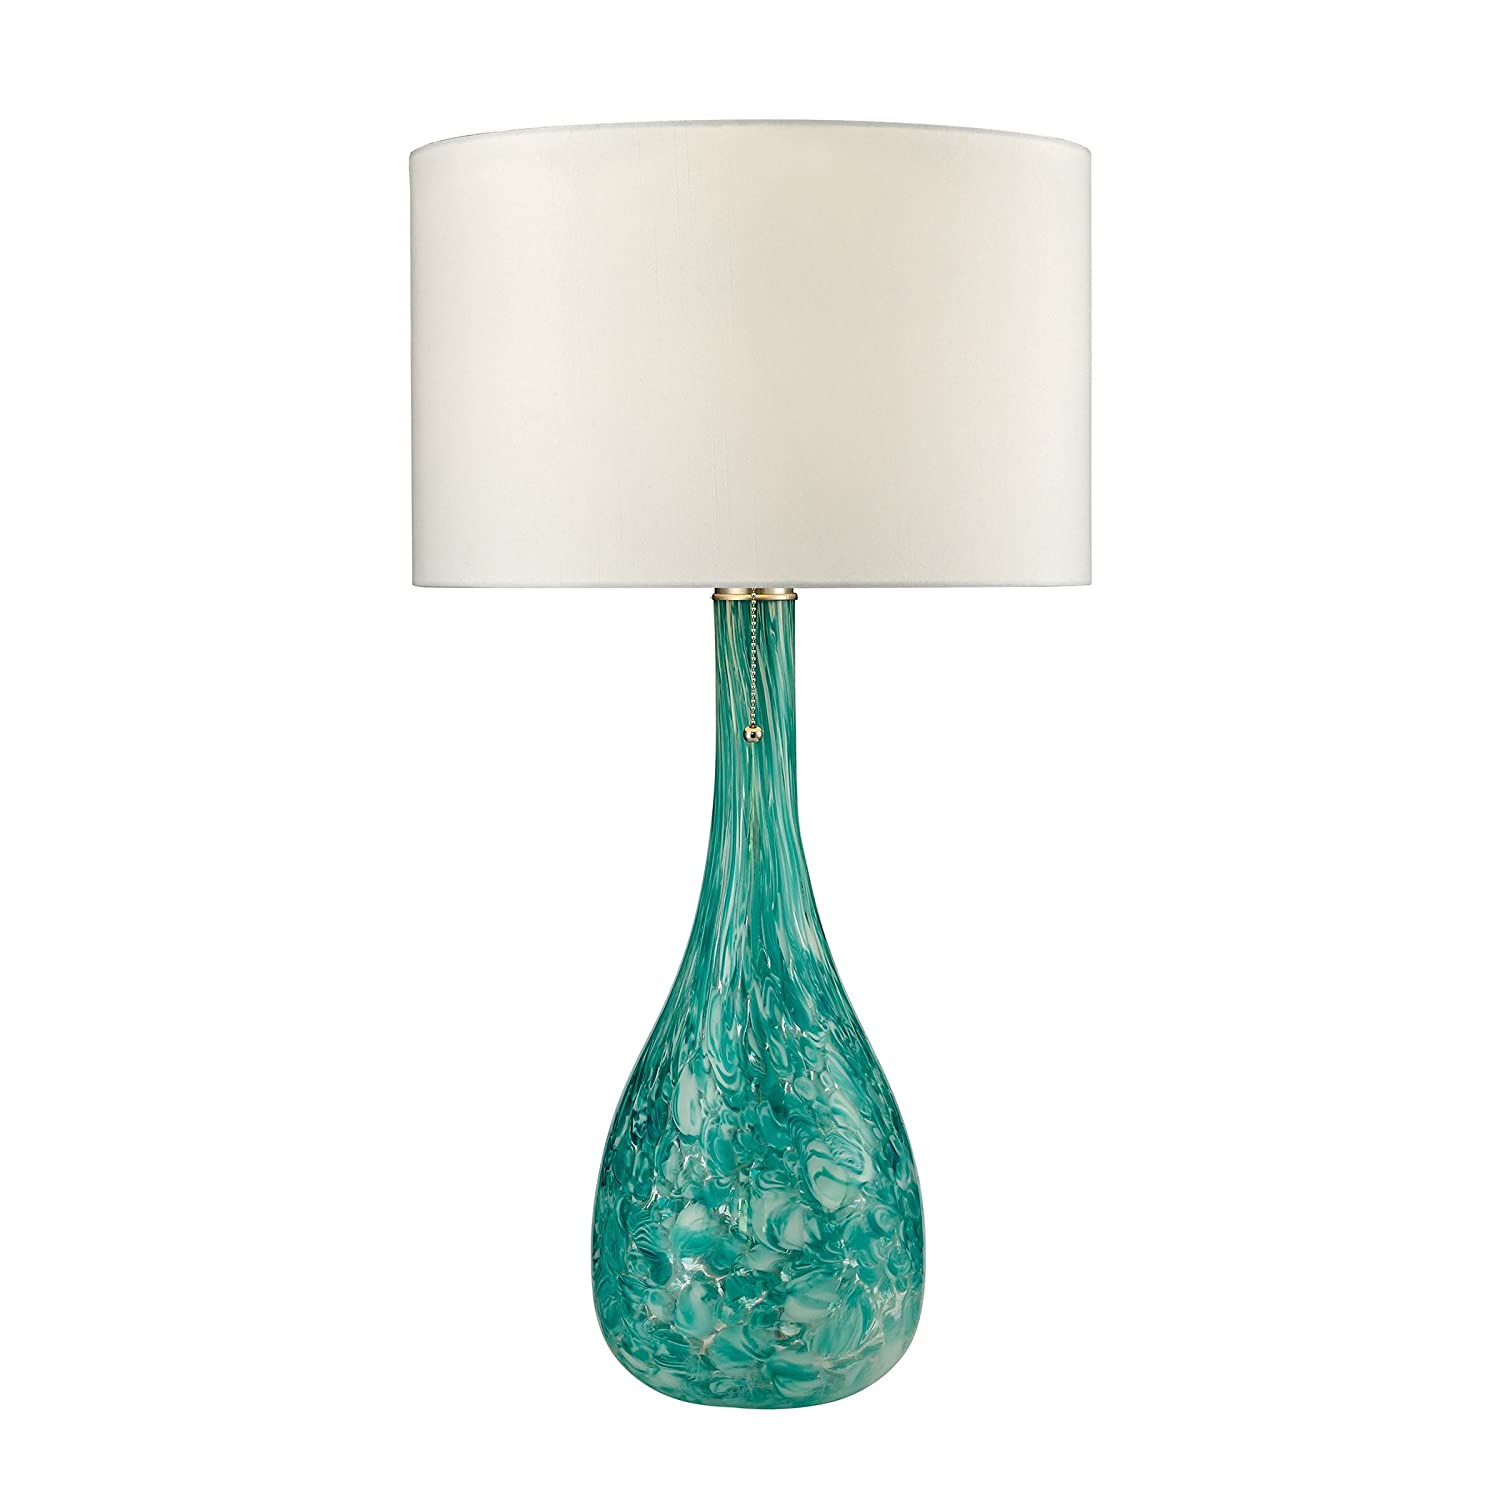 Dimond Lighting D2691 Blown Glass Table Lamp, Seafoam Green ...